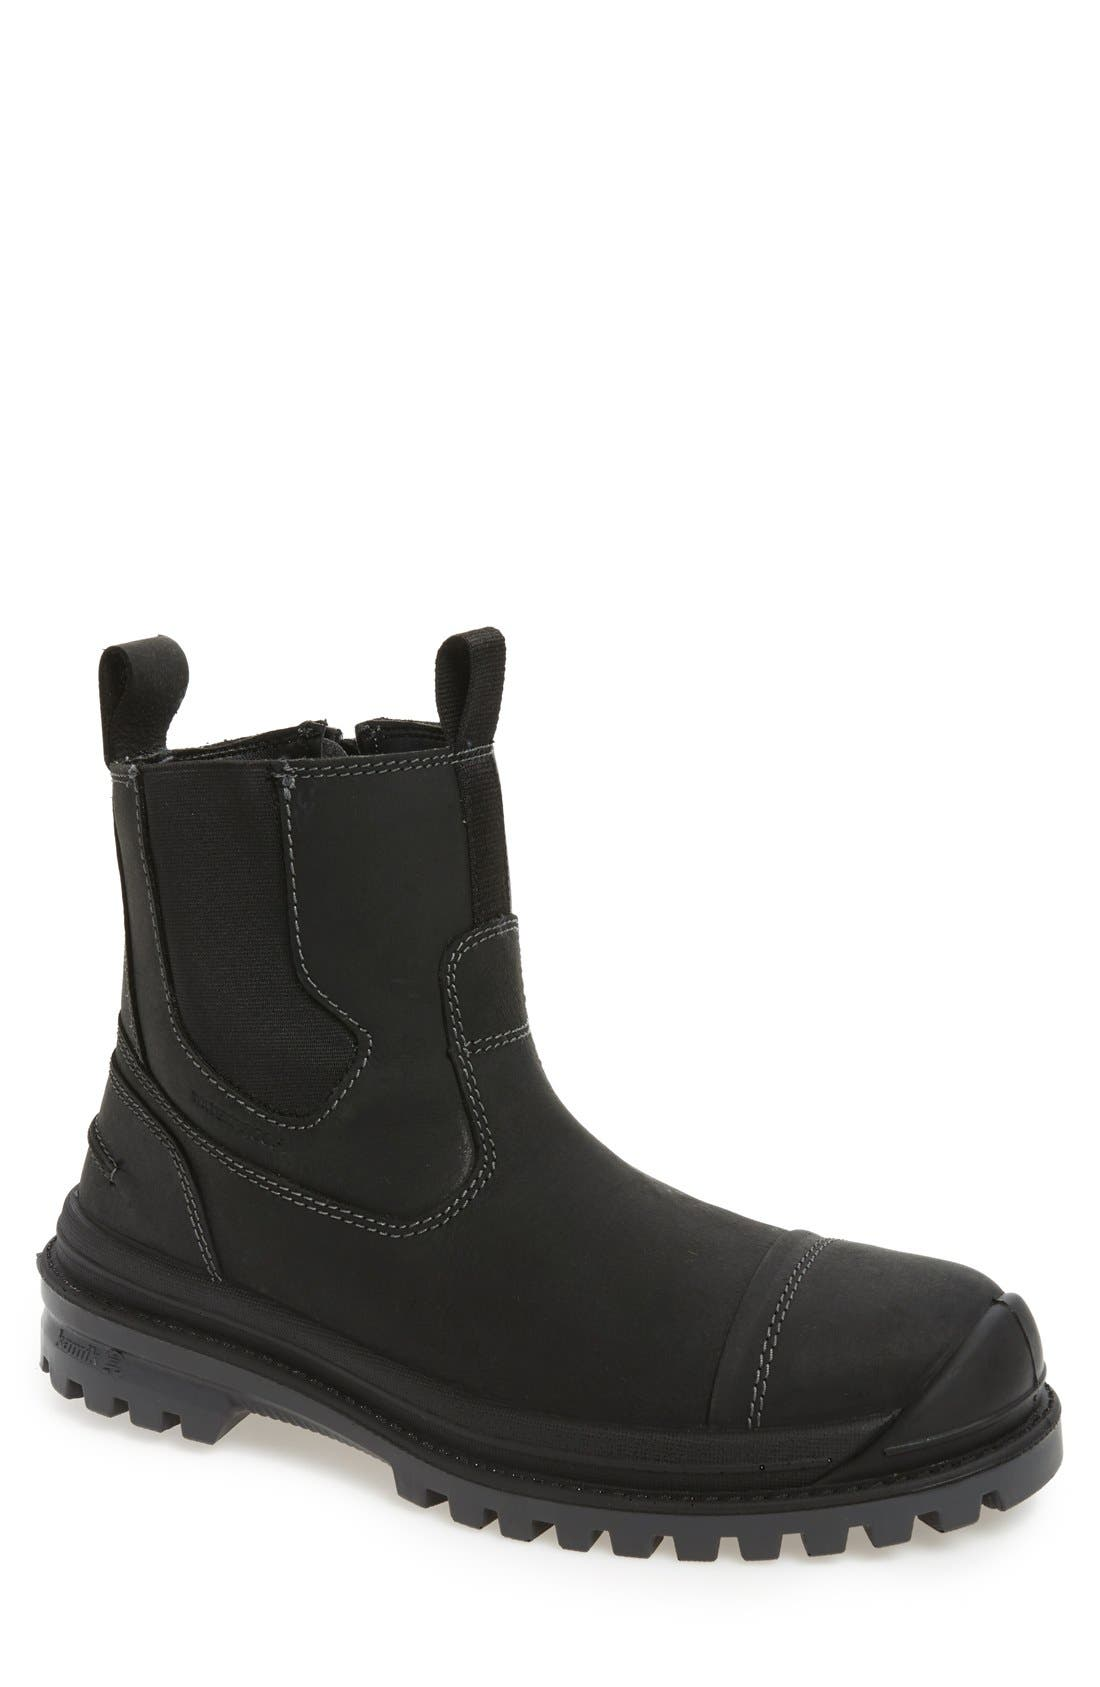 Griffon Snow Waterproof Boot,                             Main thumbnail 1, color,                             BLACK LEATHER